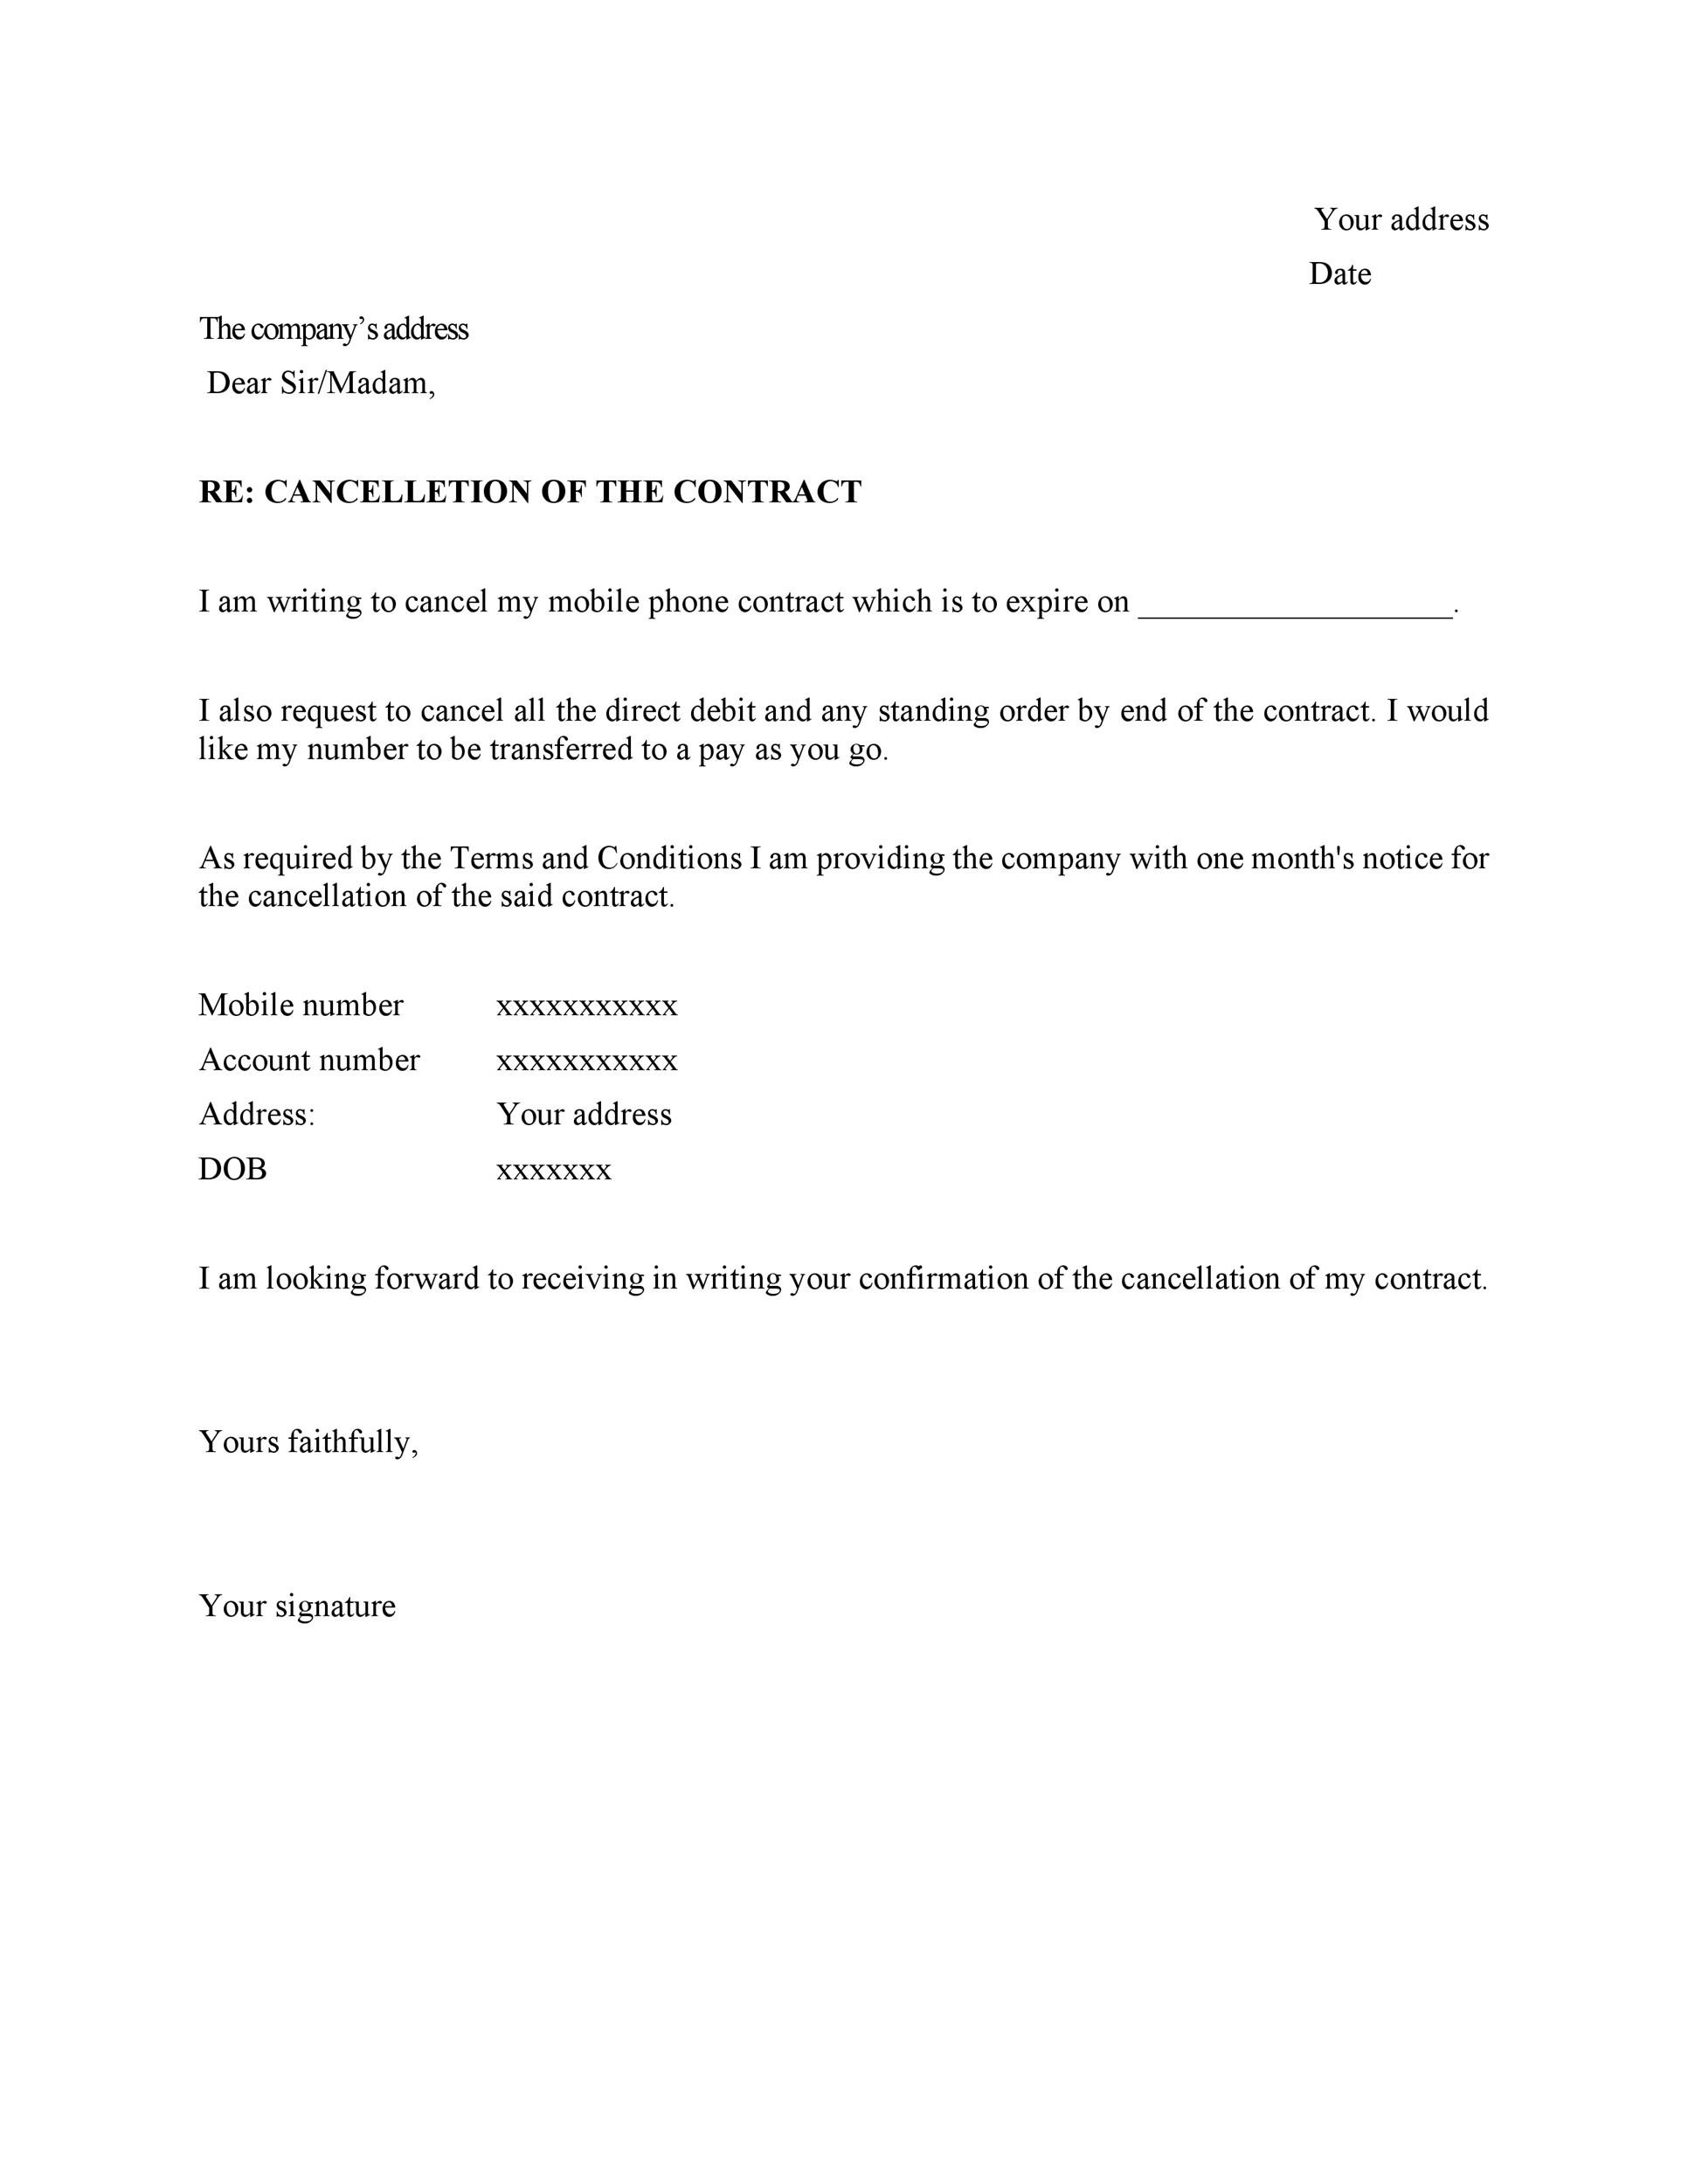 Free cancellation letter 23